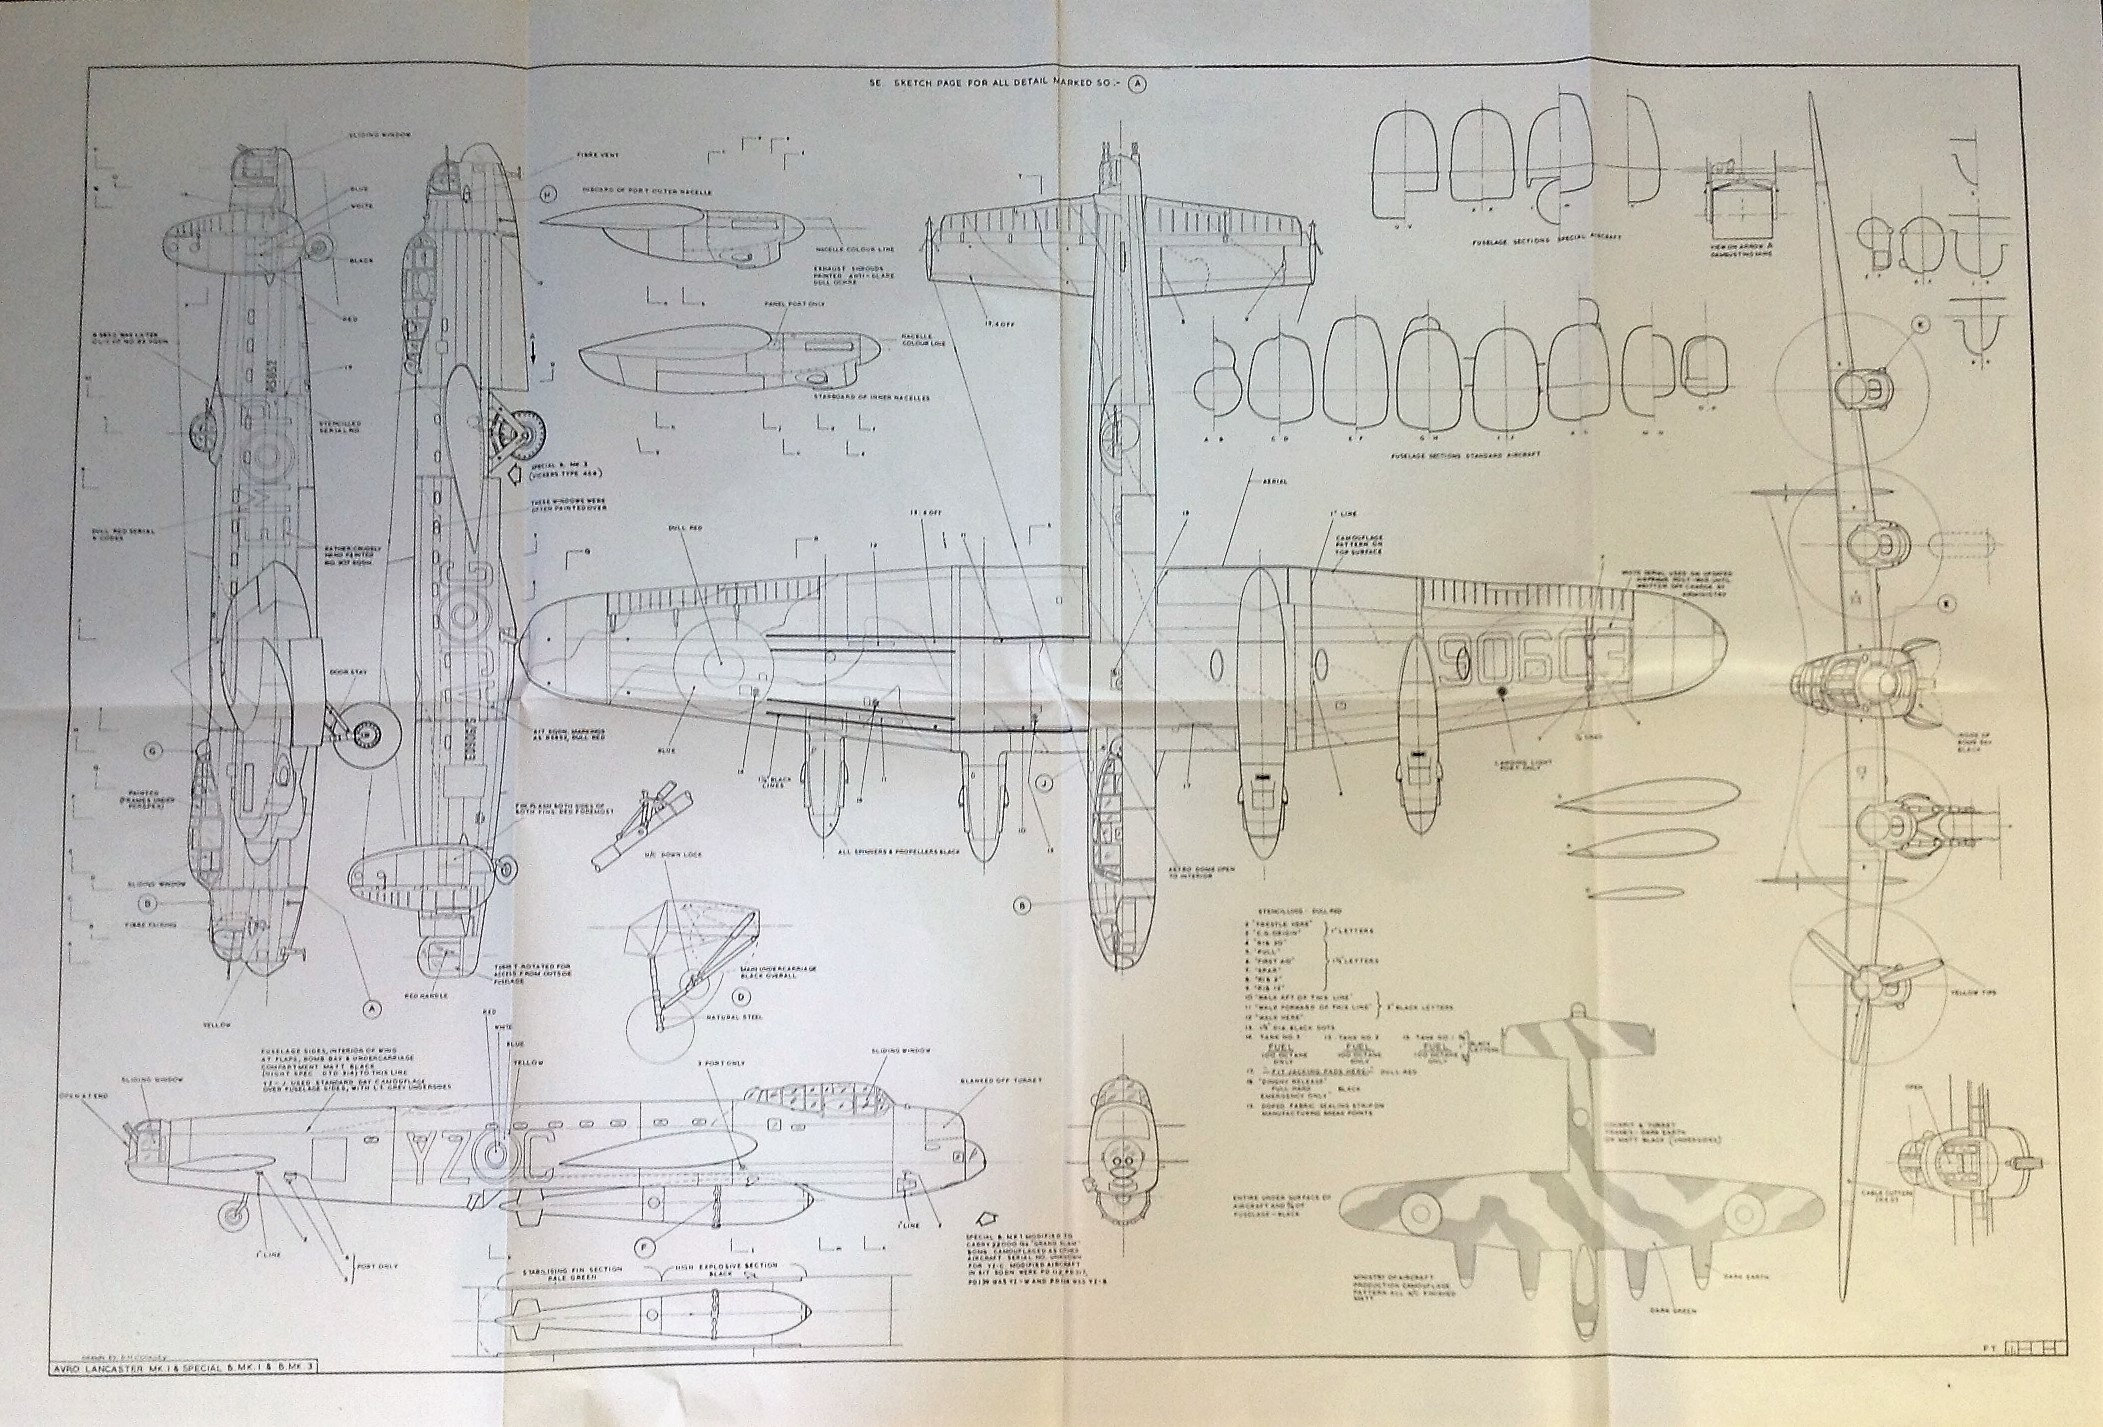 Lot 40 - World War Two Avro Lancaster Bomber MK1 Spec 1/48 detailed scale drawings of the iconic world war